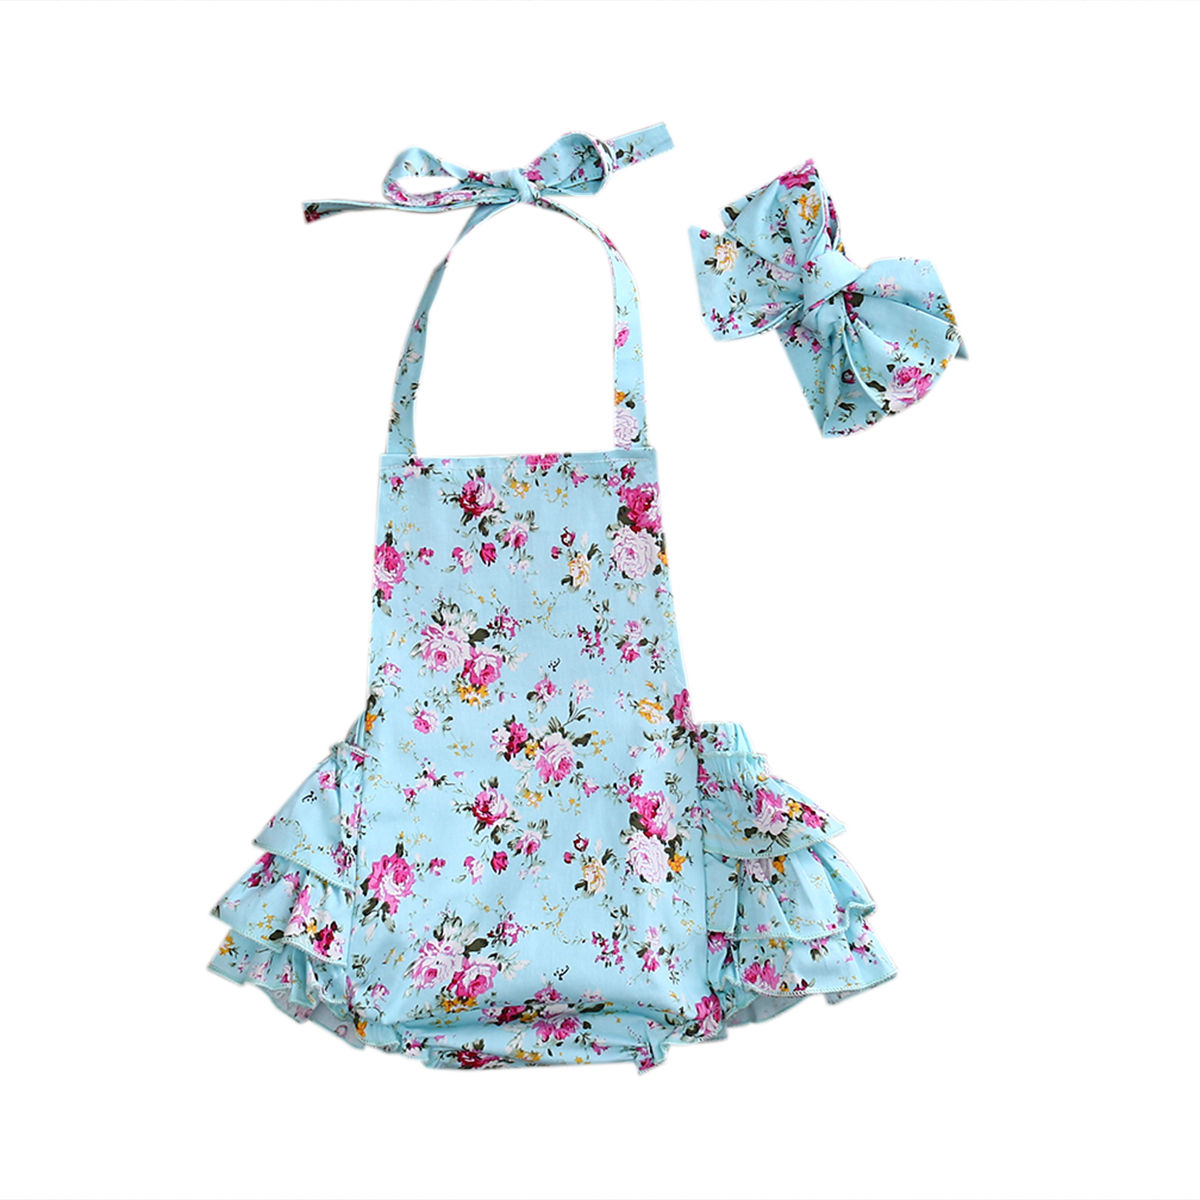 Summer Newborn Infant Baby Girls Floral Tiered Romper Jumpsuit Outfit Sunsuit Playsuit Belt Cotton Clothes infant baby girls romper lace floral sleeveless belt romper jumpsuit playsuit one piece outfit summer newborn baby girl clothes